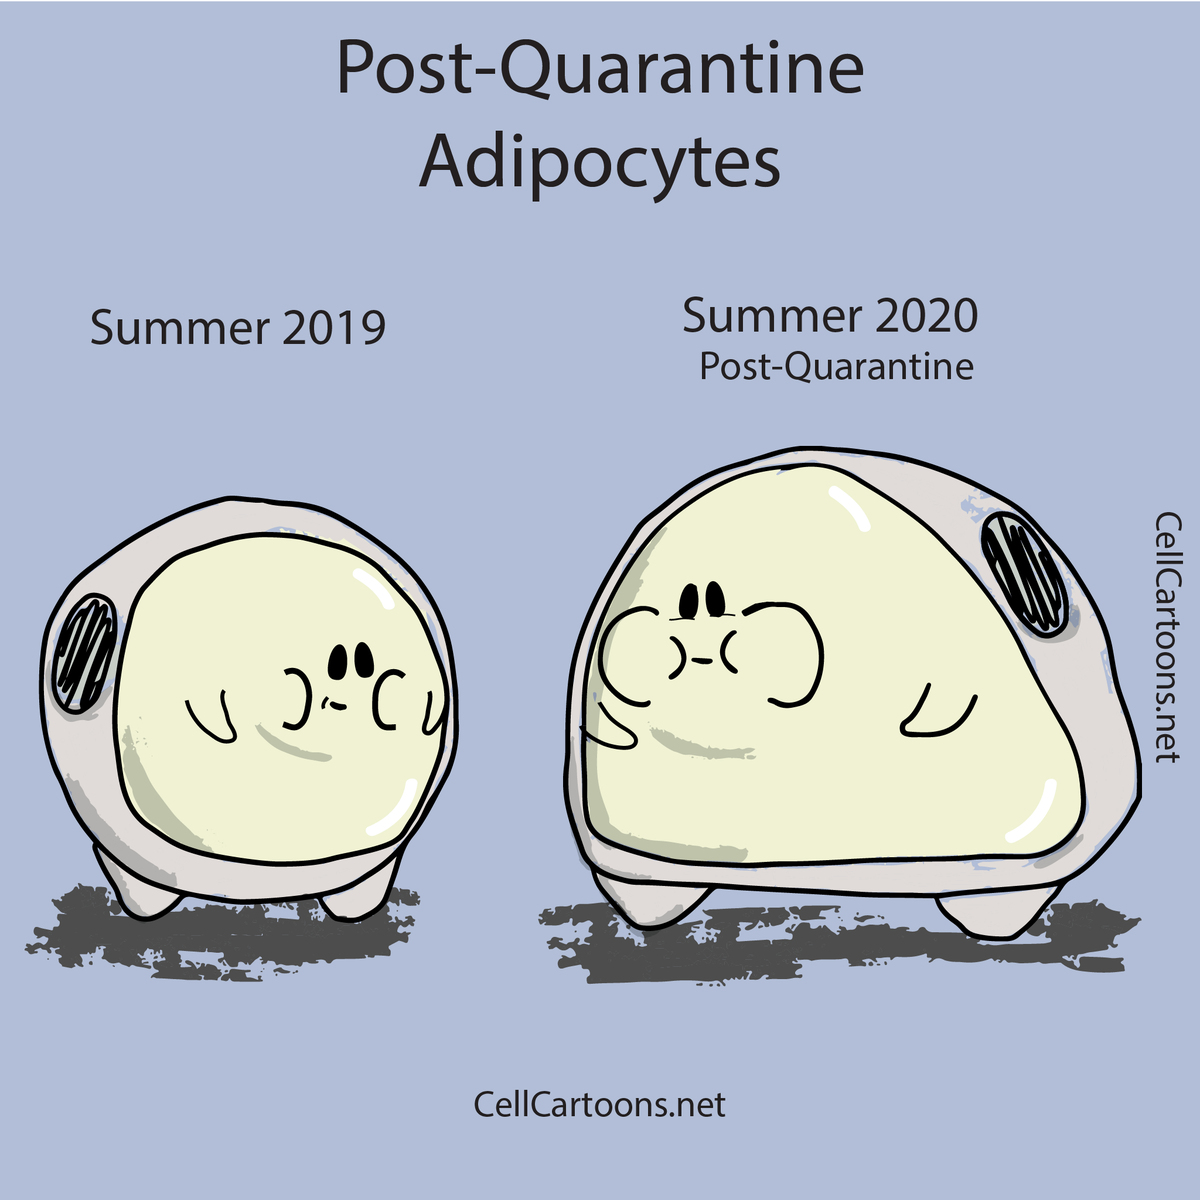 These are my adipocytes after not having had a chance to workout in +3 months. They keep getting bigger and bigger #adipocytes #fatcells #CellCartoons #biology #laboratory #cellbiology #medicalart #sciart #scienceart #sciencecommunication #sciencecomics #biologymeme  pic.twitter.com/HedGUdMIPq